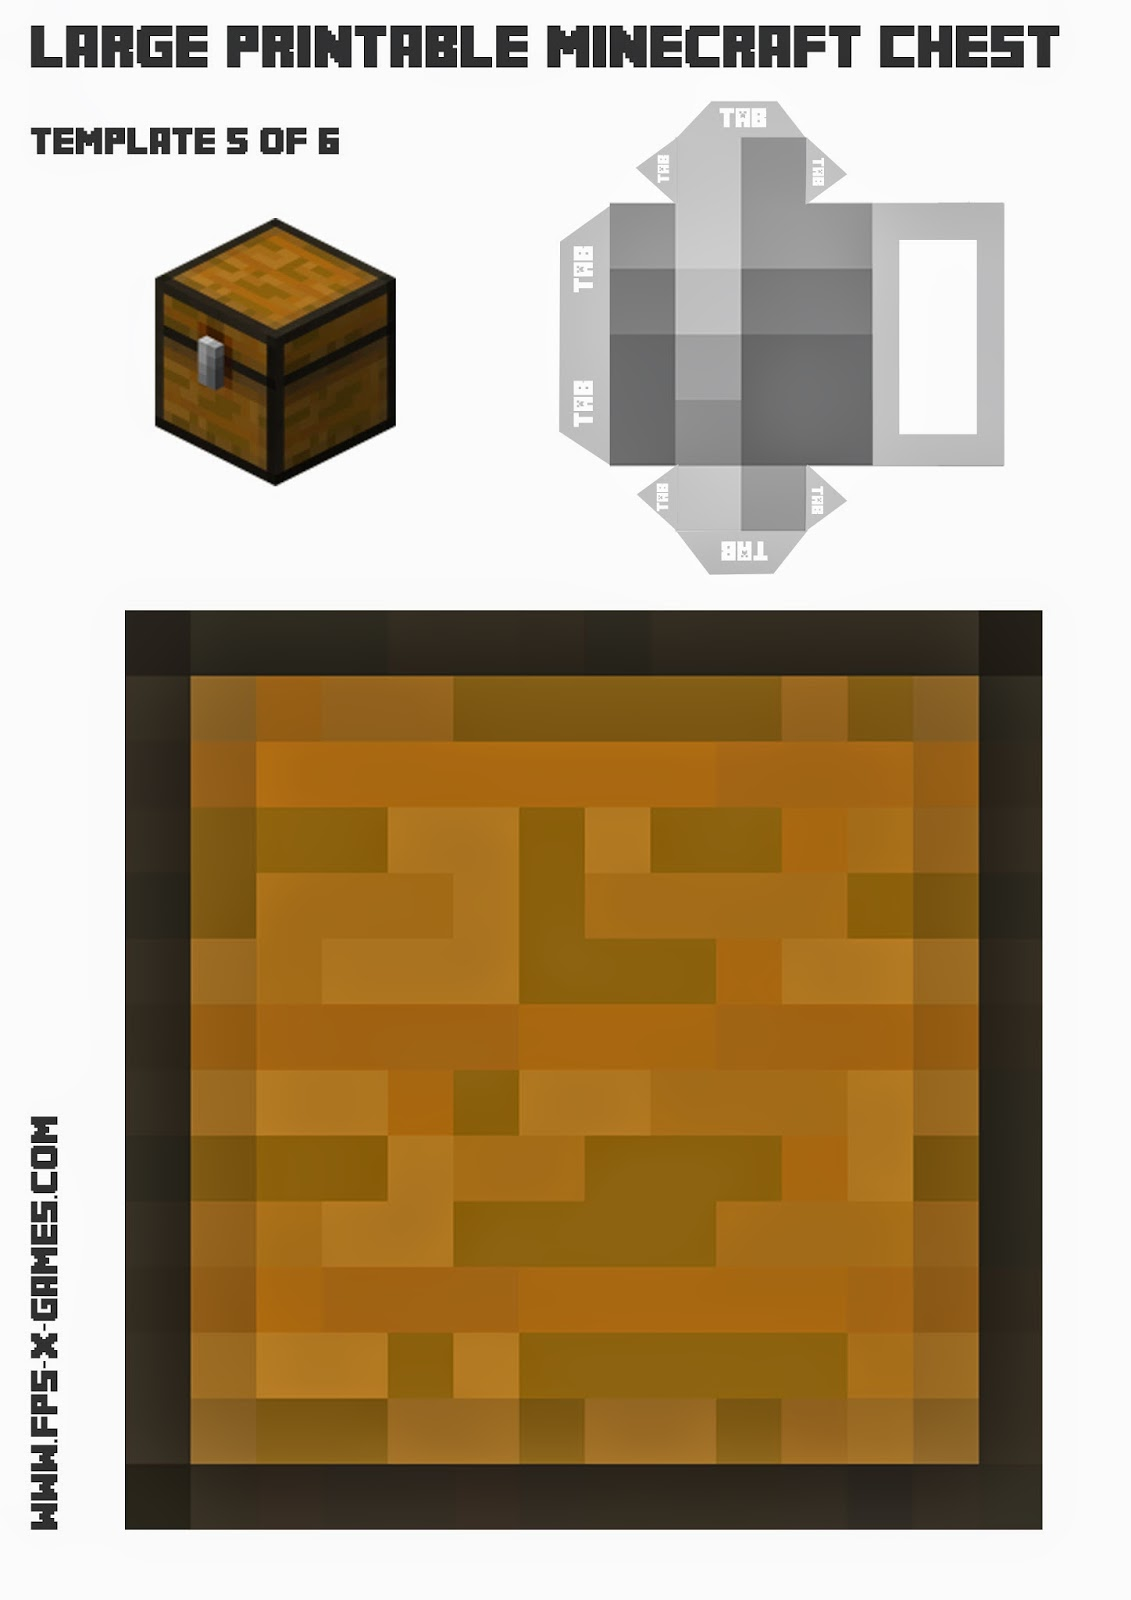 Print and create your own Minecraft chest, papercraft template 5 of 6